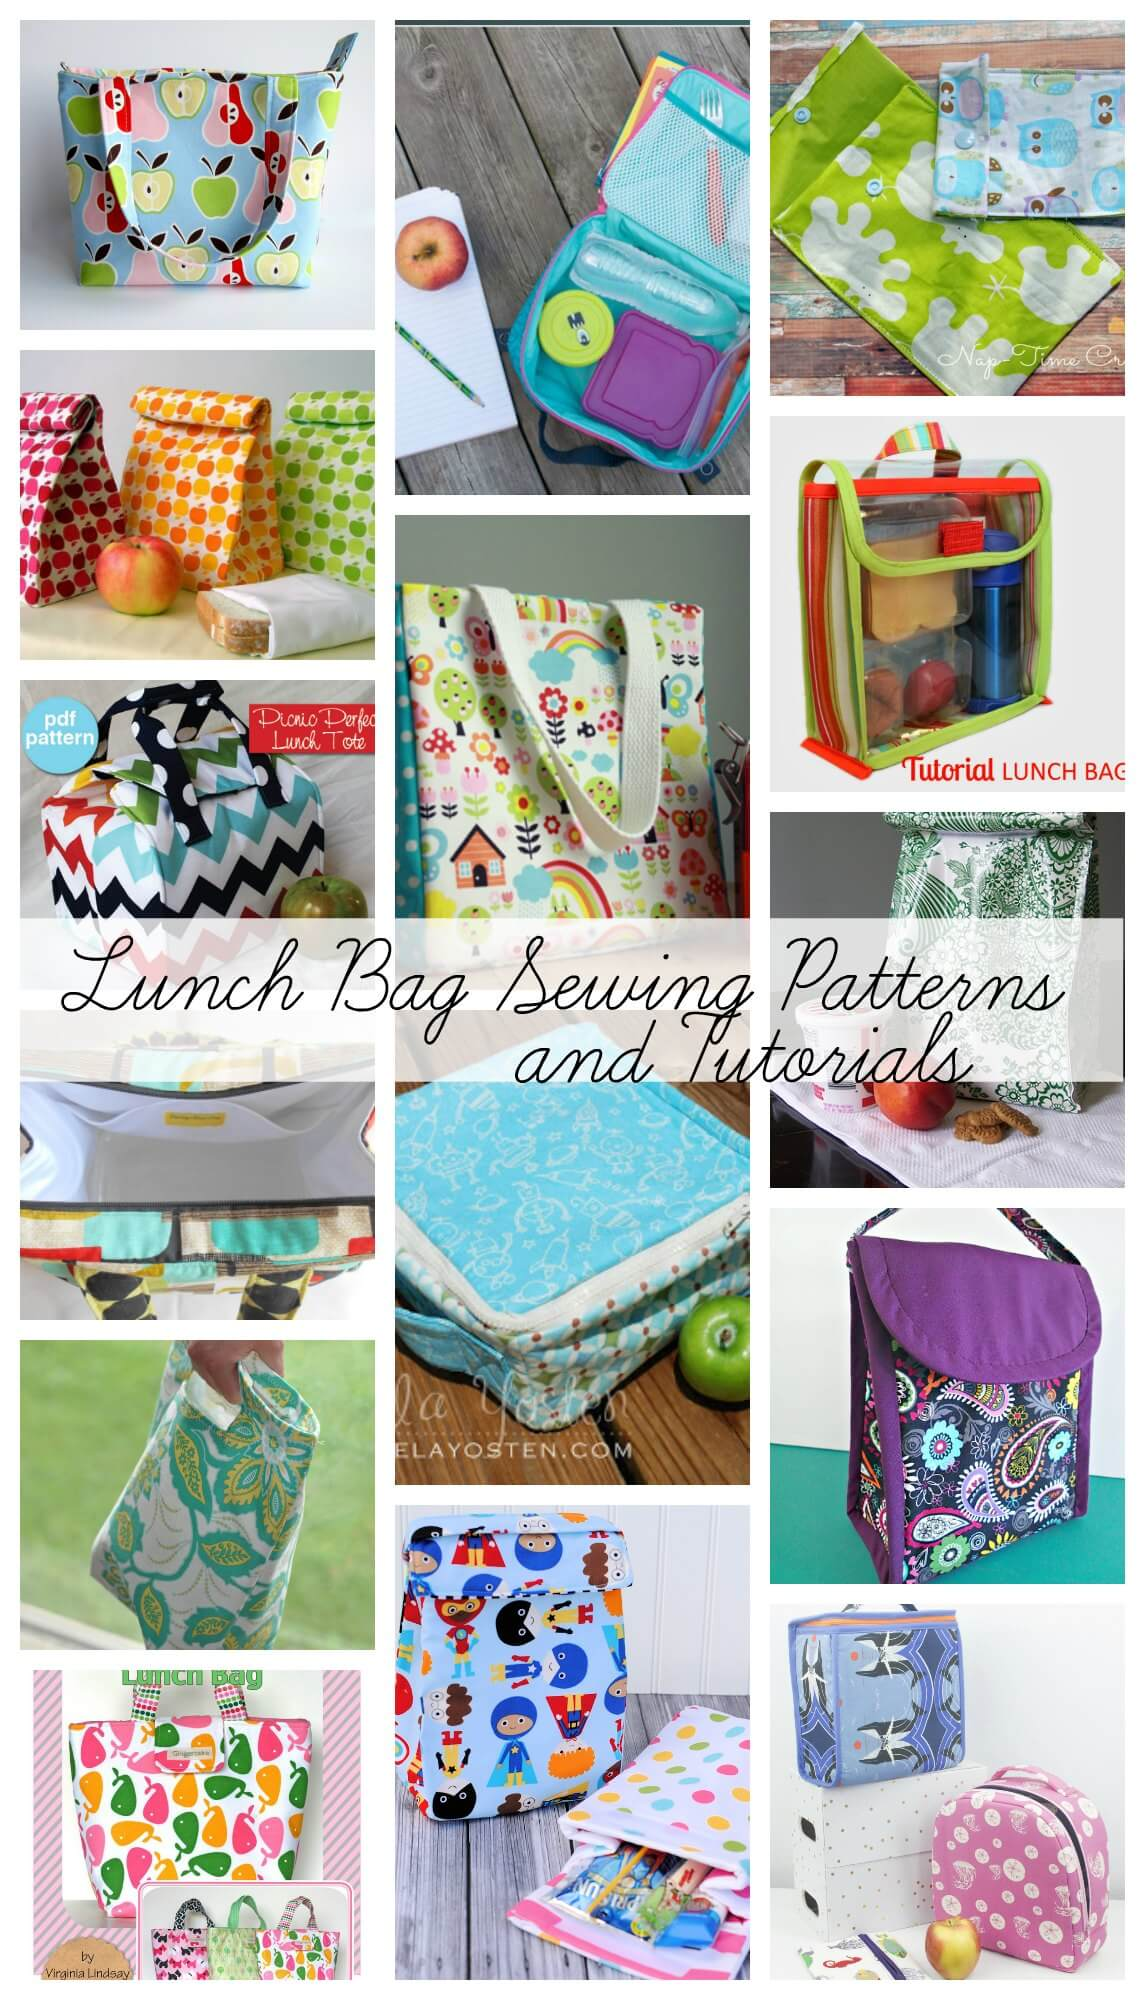 f9f4d6367d Lunch bag sewing patterns for Back to School - Life Sew Savory